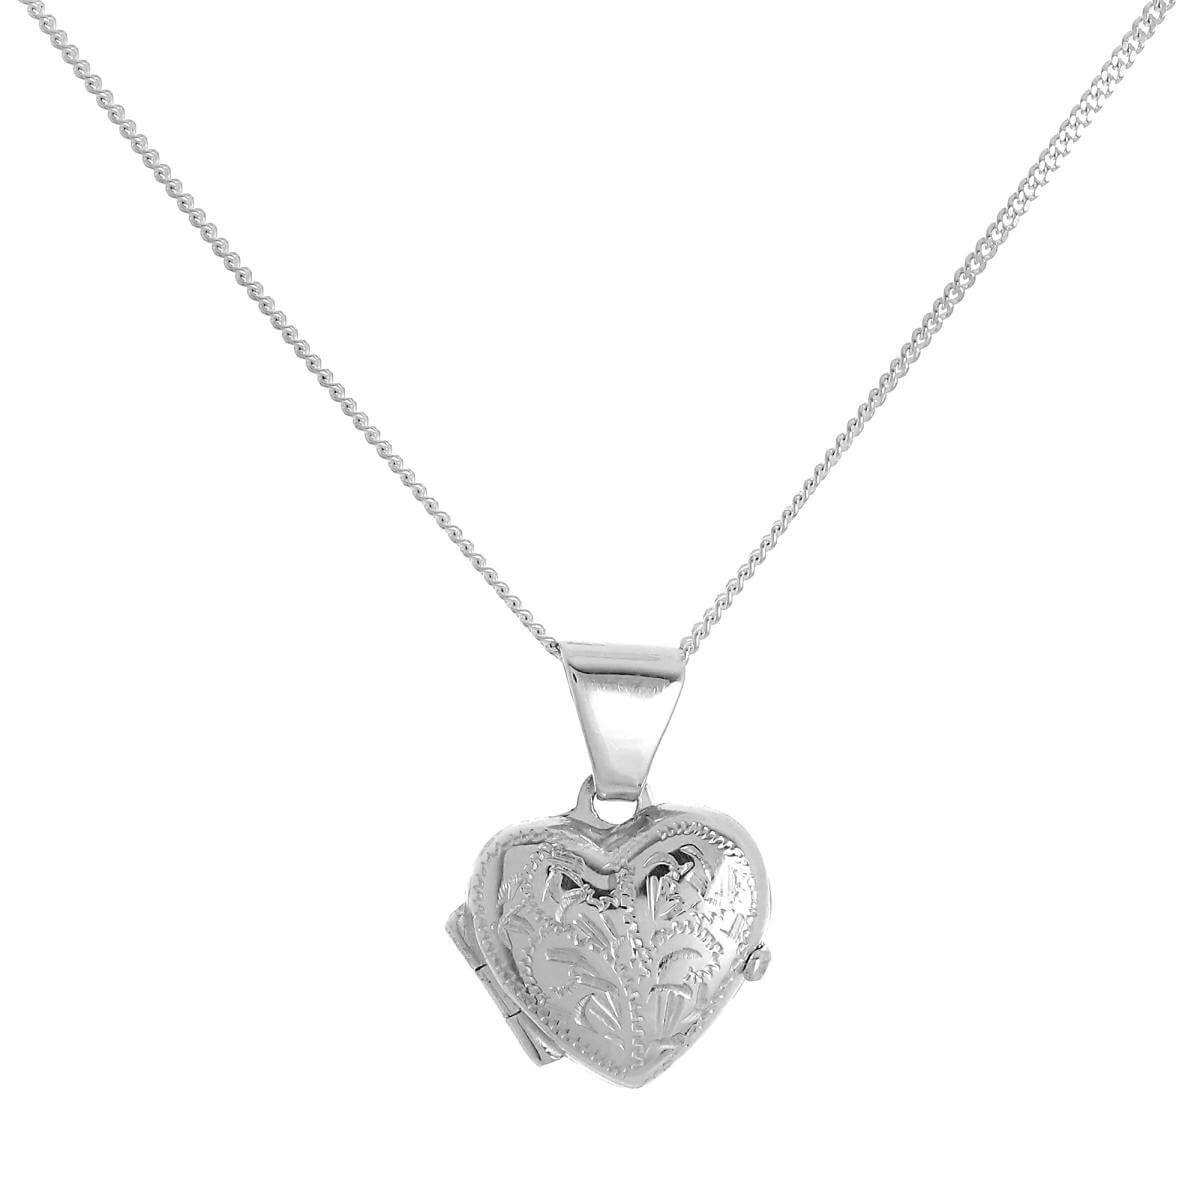 Tiny Sterling Silver Engraved Heart Locket on Chain